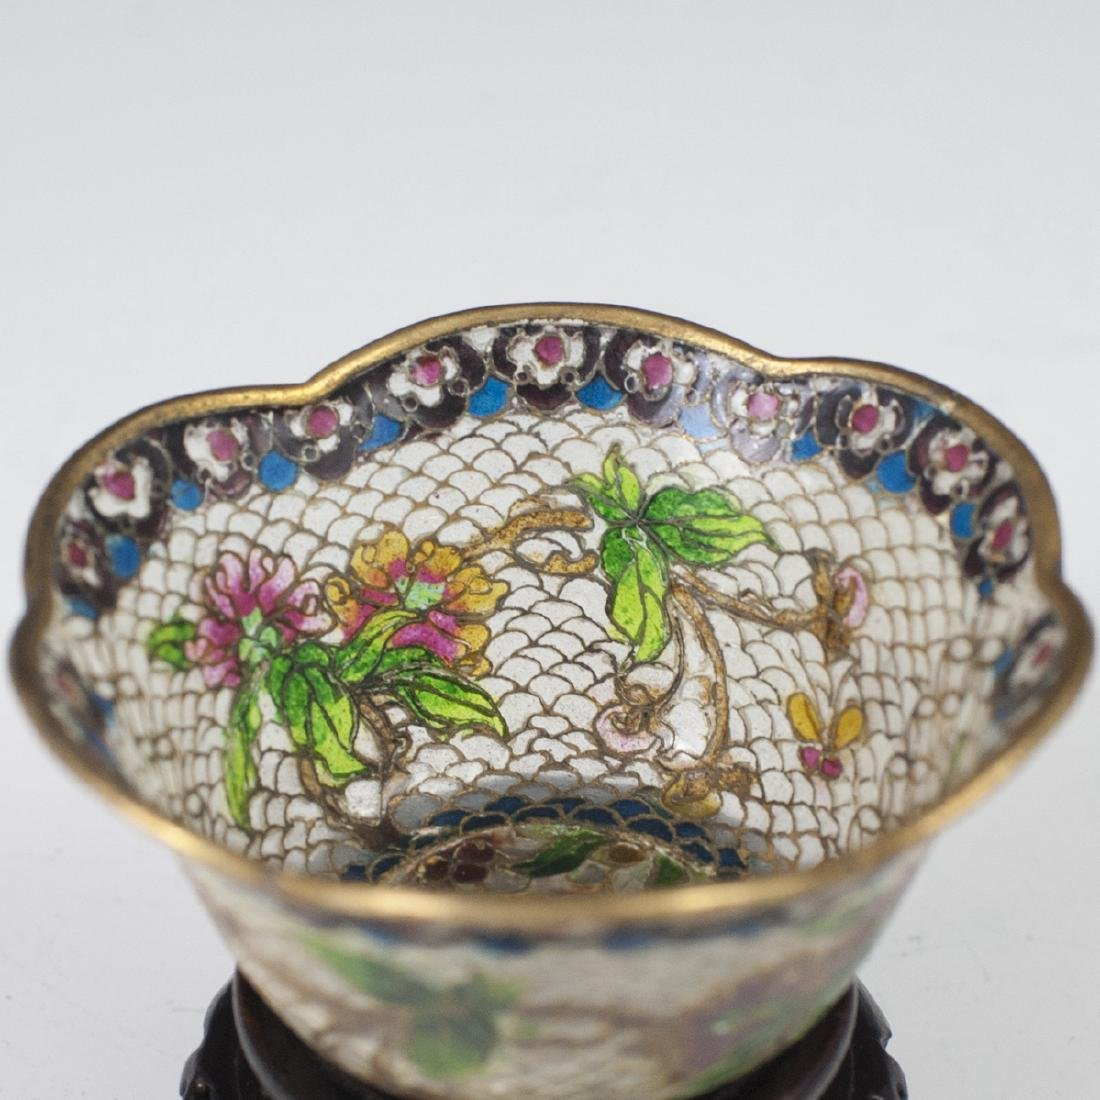 Chinese Plique a Jour Diminutive Bowl - 2